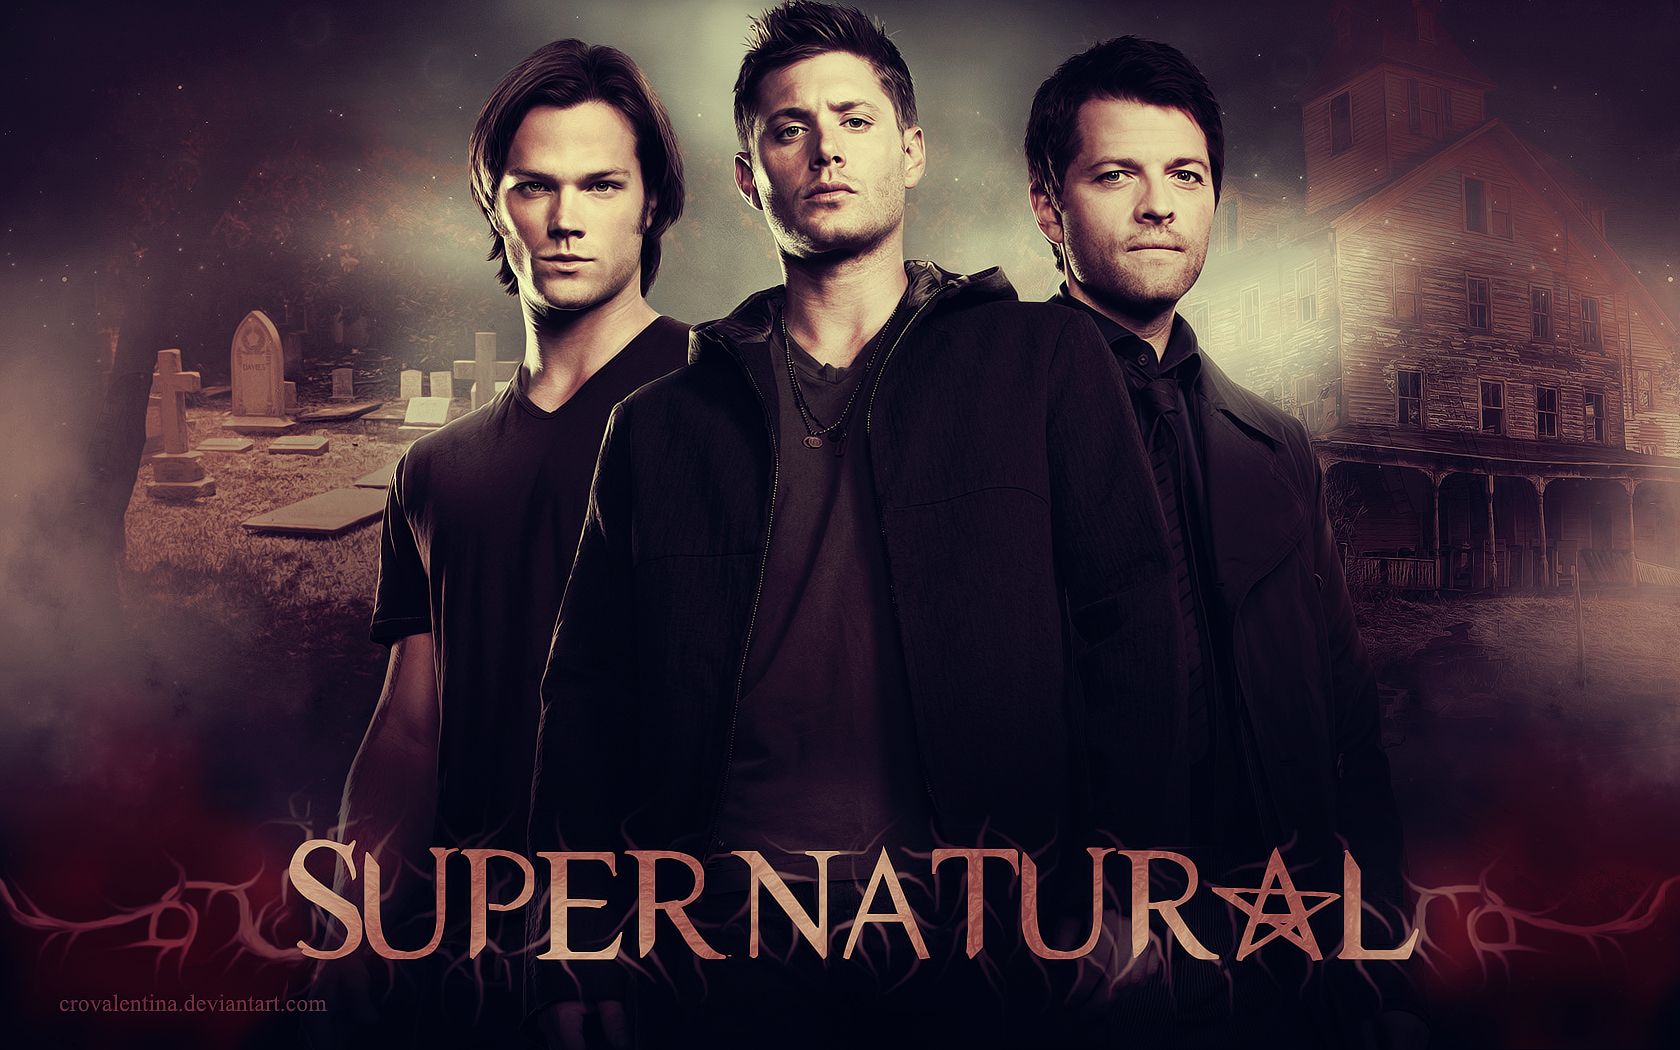 Supernatural Spin-off? | mxdwn Television